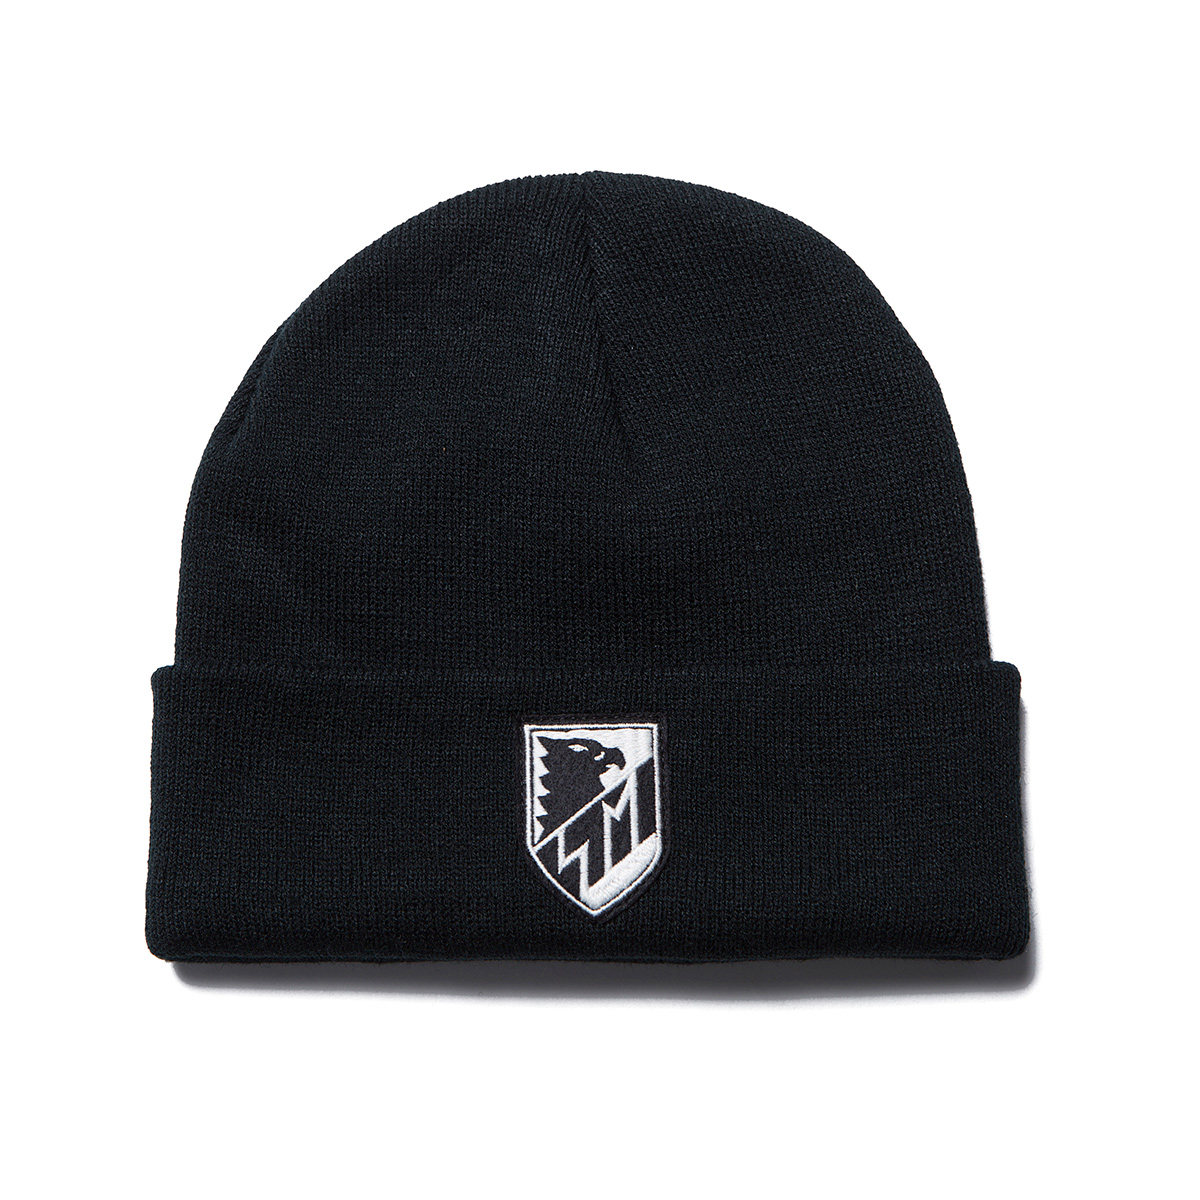 TROOPS KNIT CAP